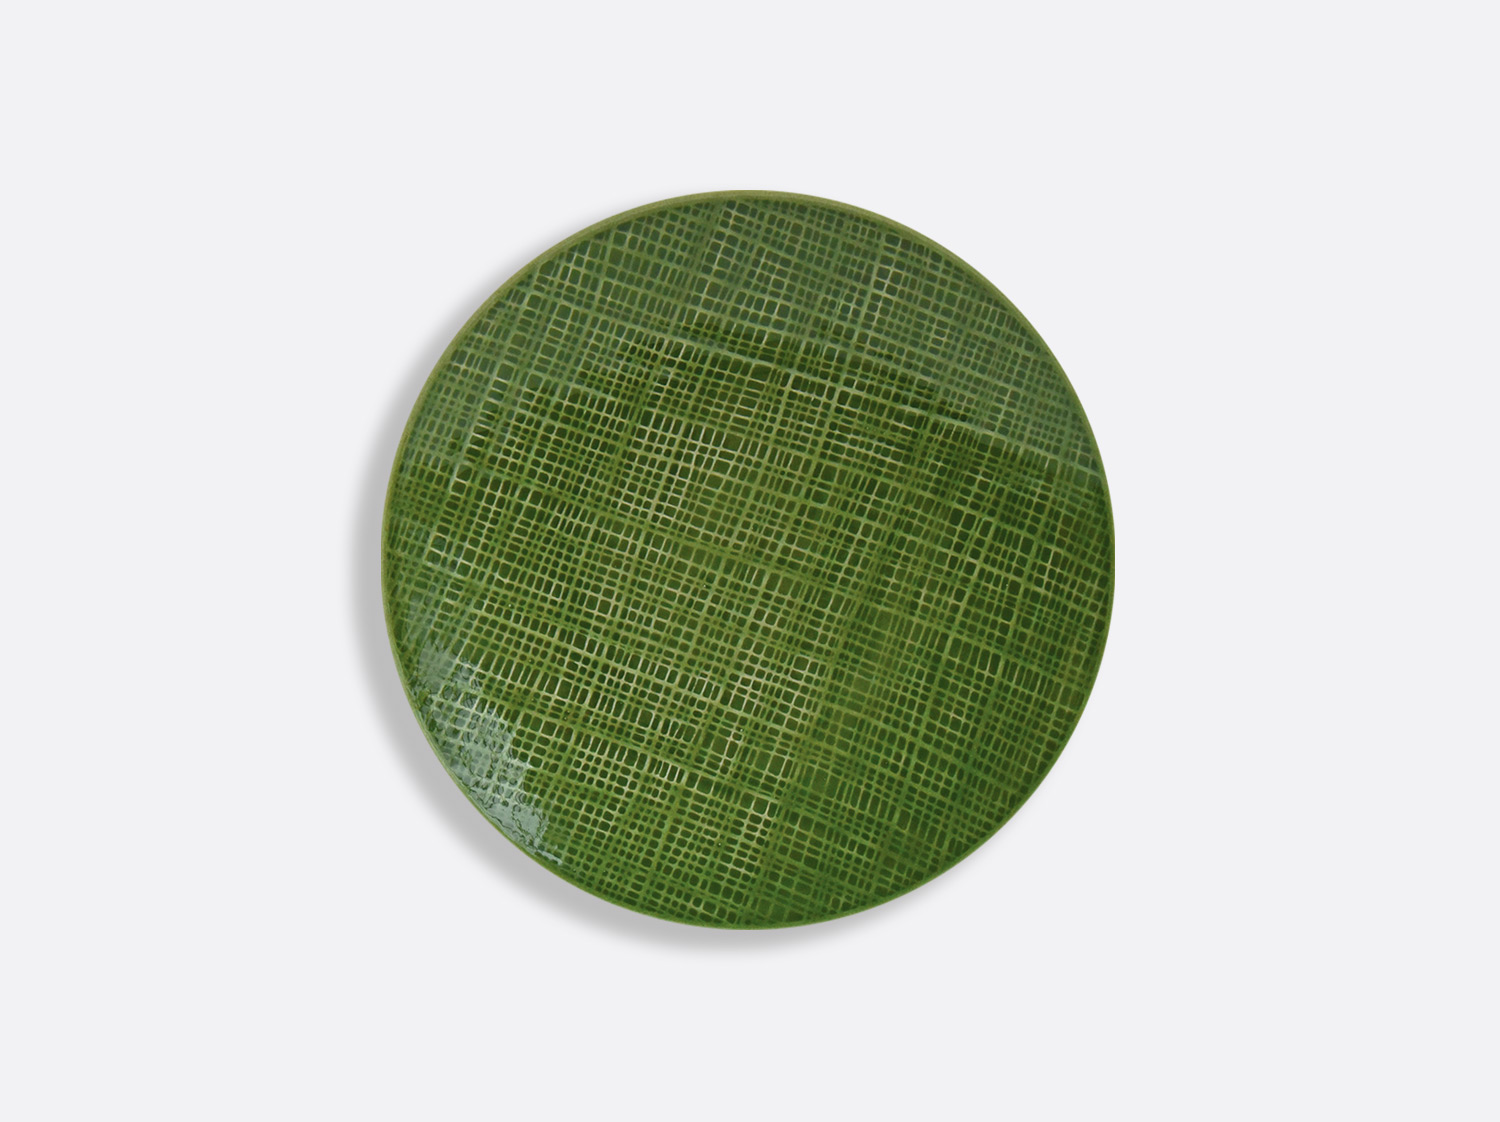 China Vert Chartreux coupe plate 16 cm of the collection ORGANZA VERT CHARTREUX | Bernardaud